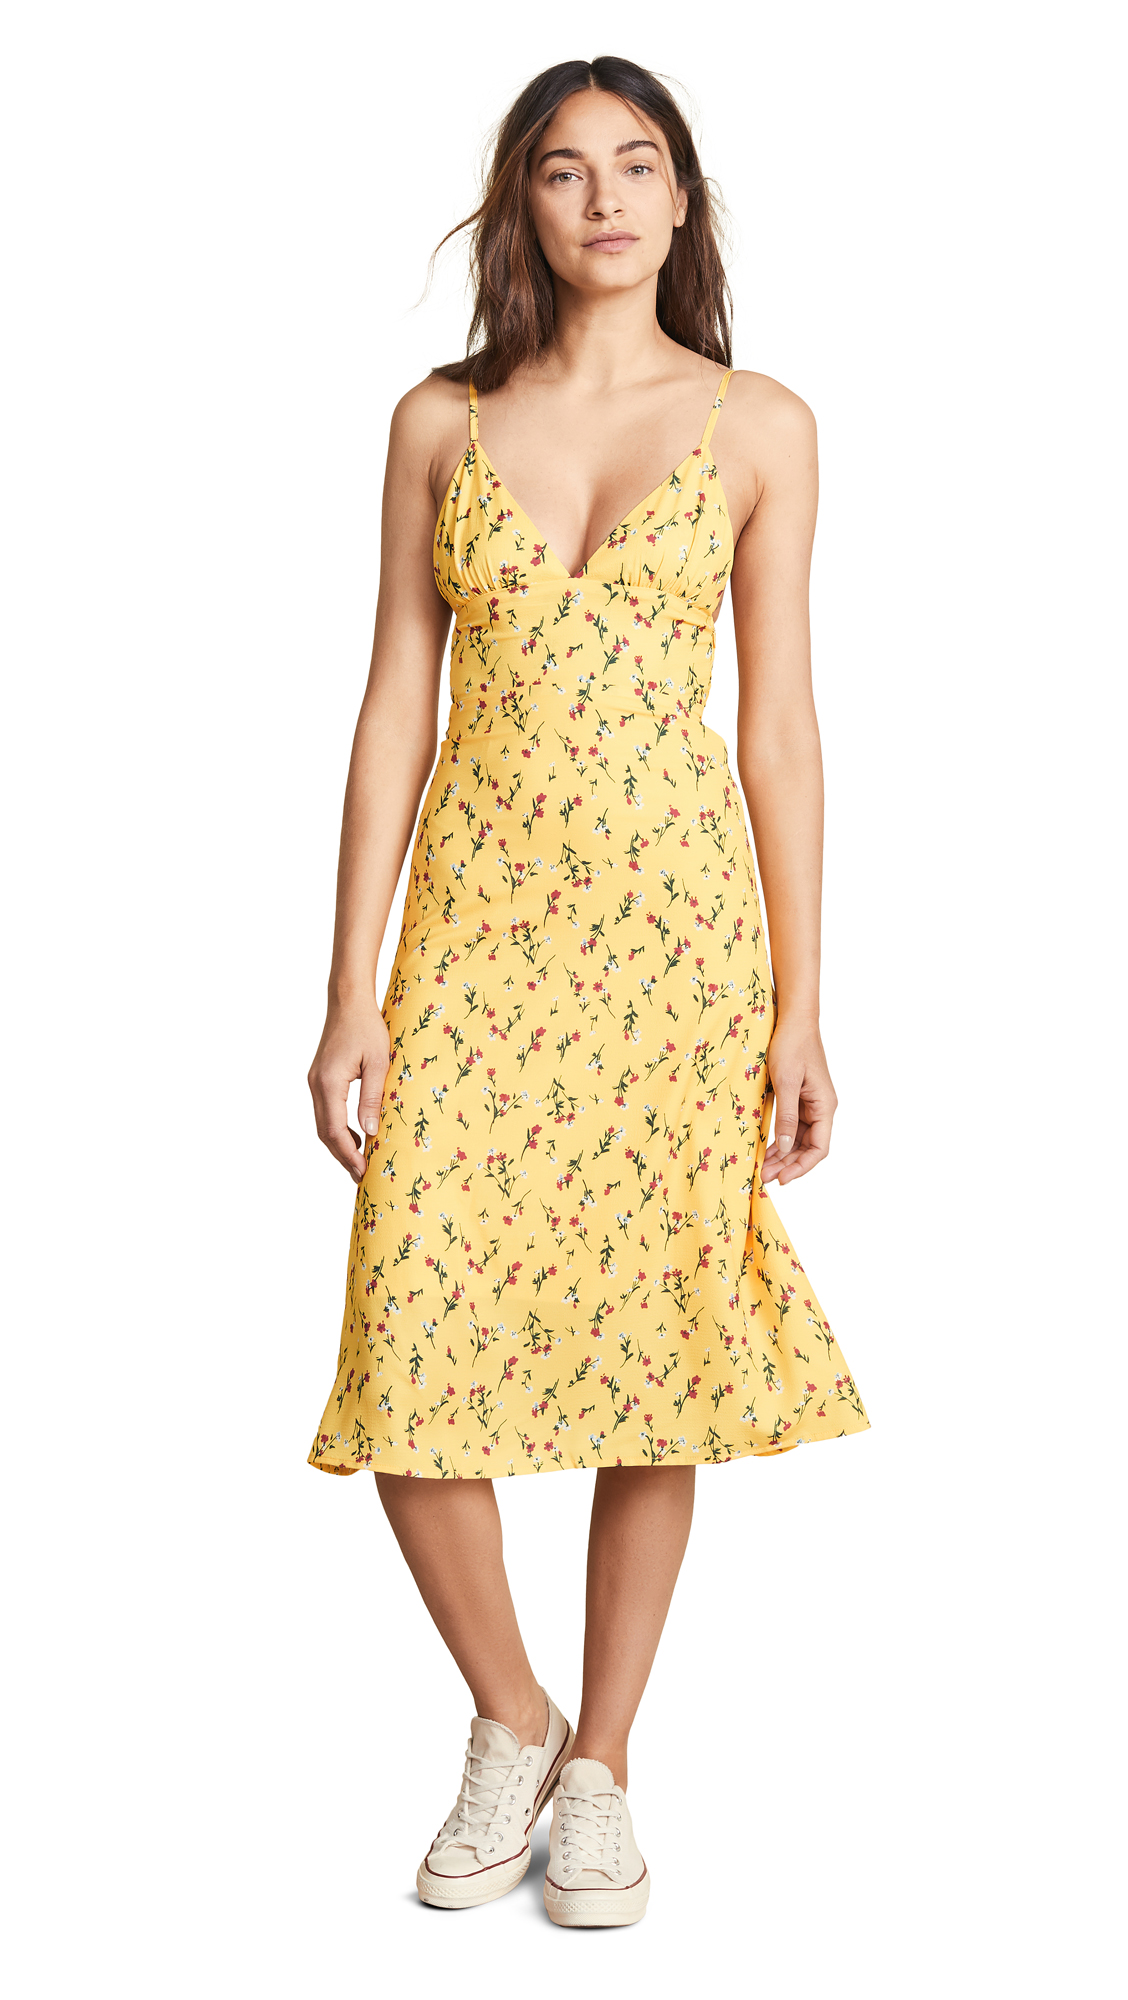 NIGHTWALKER The Nadia Dress in Yellow Floral